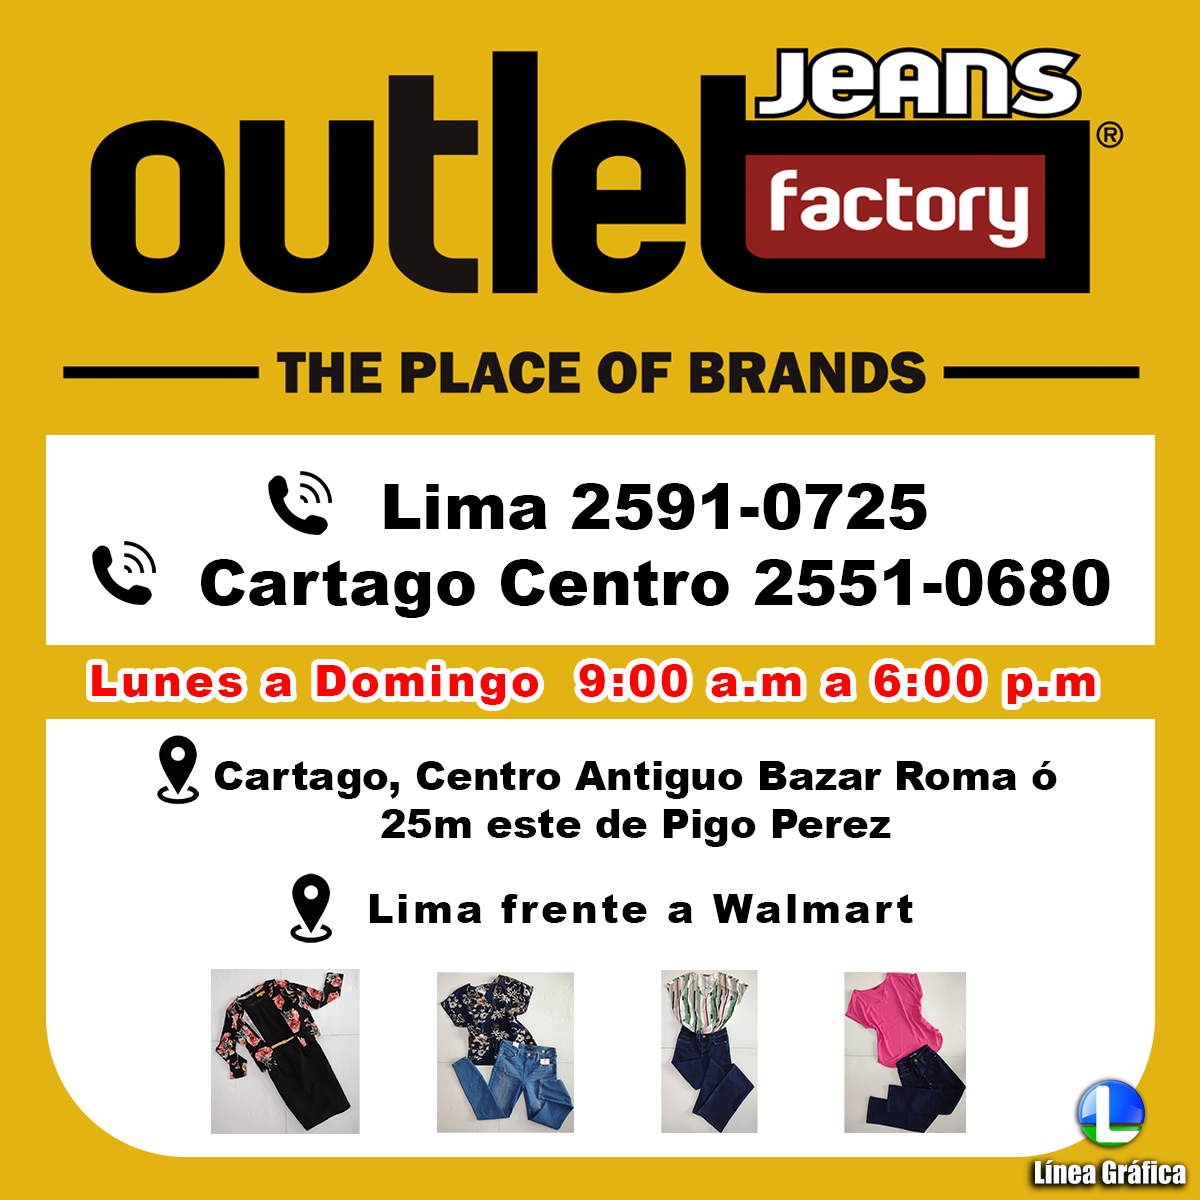 Outlet Jeans Factory 25510680